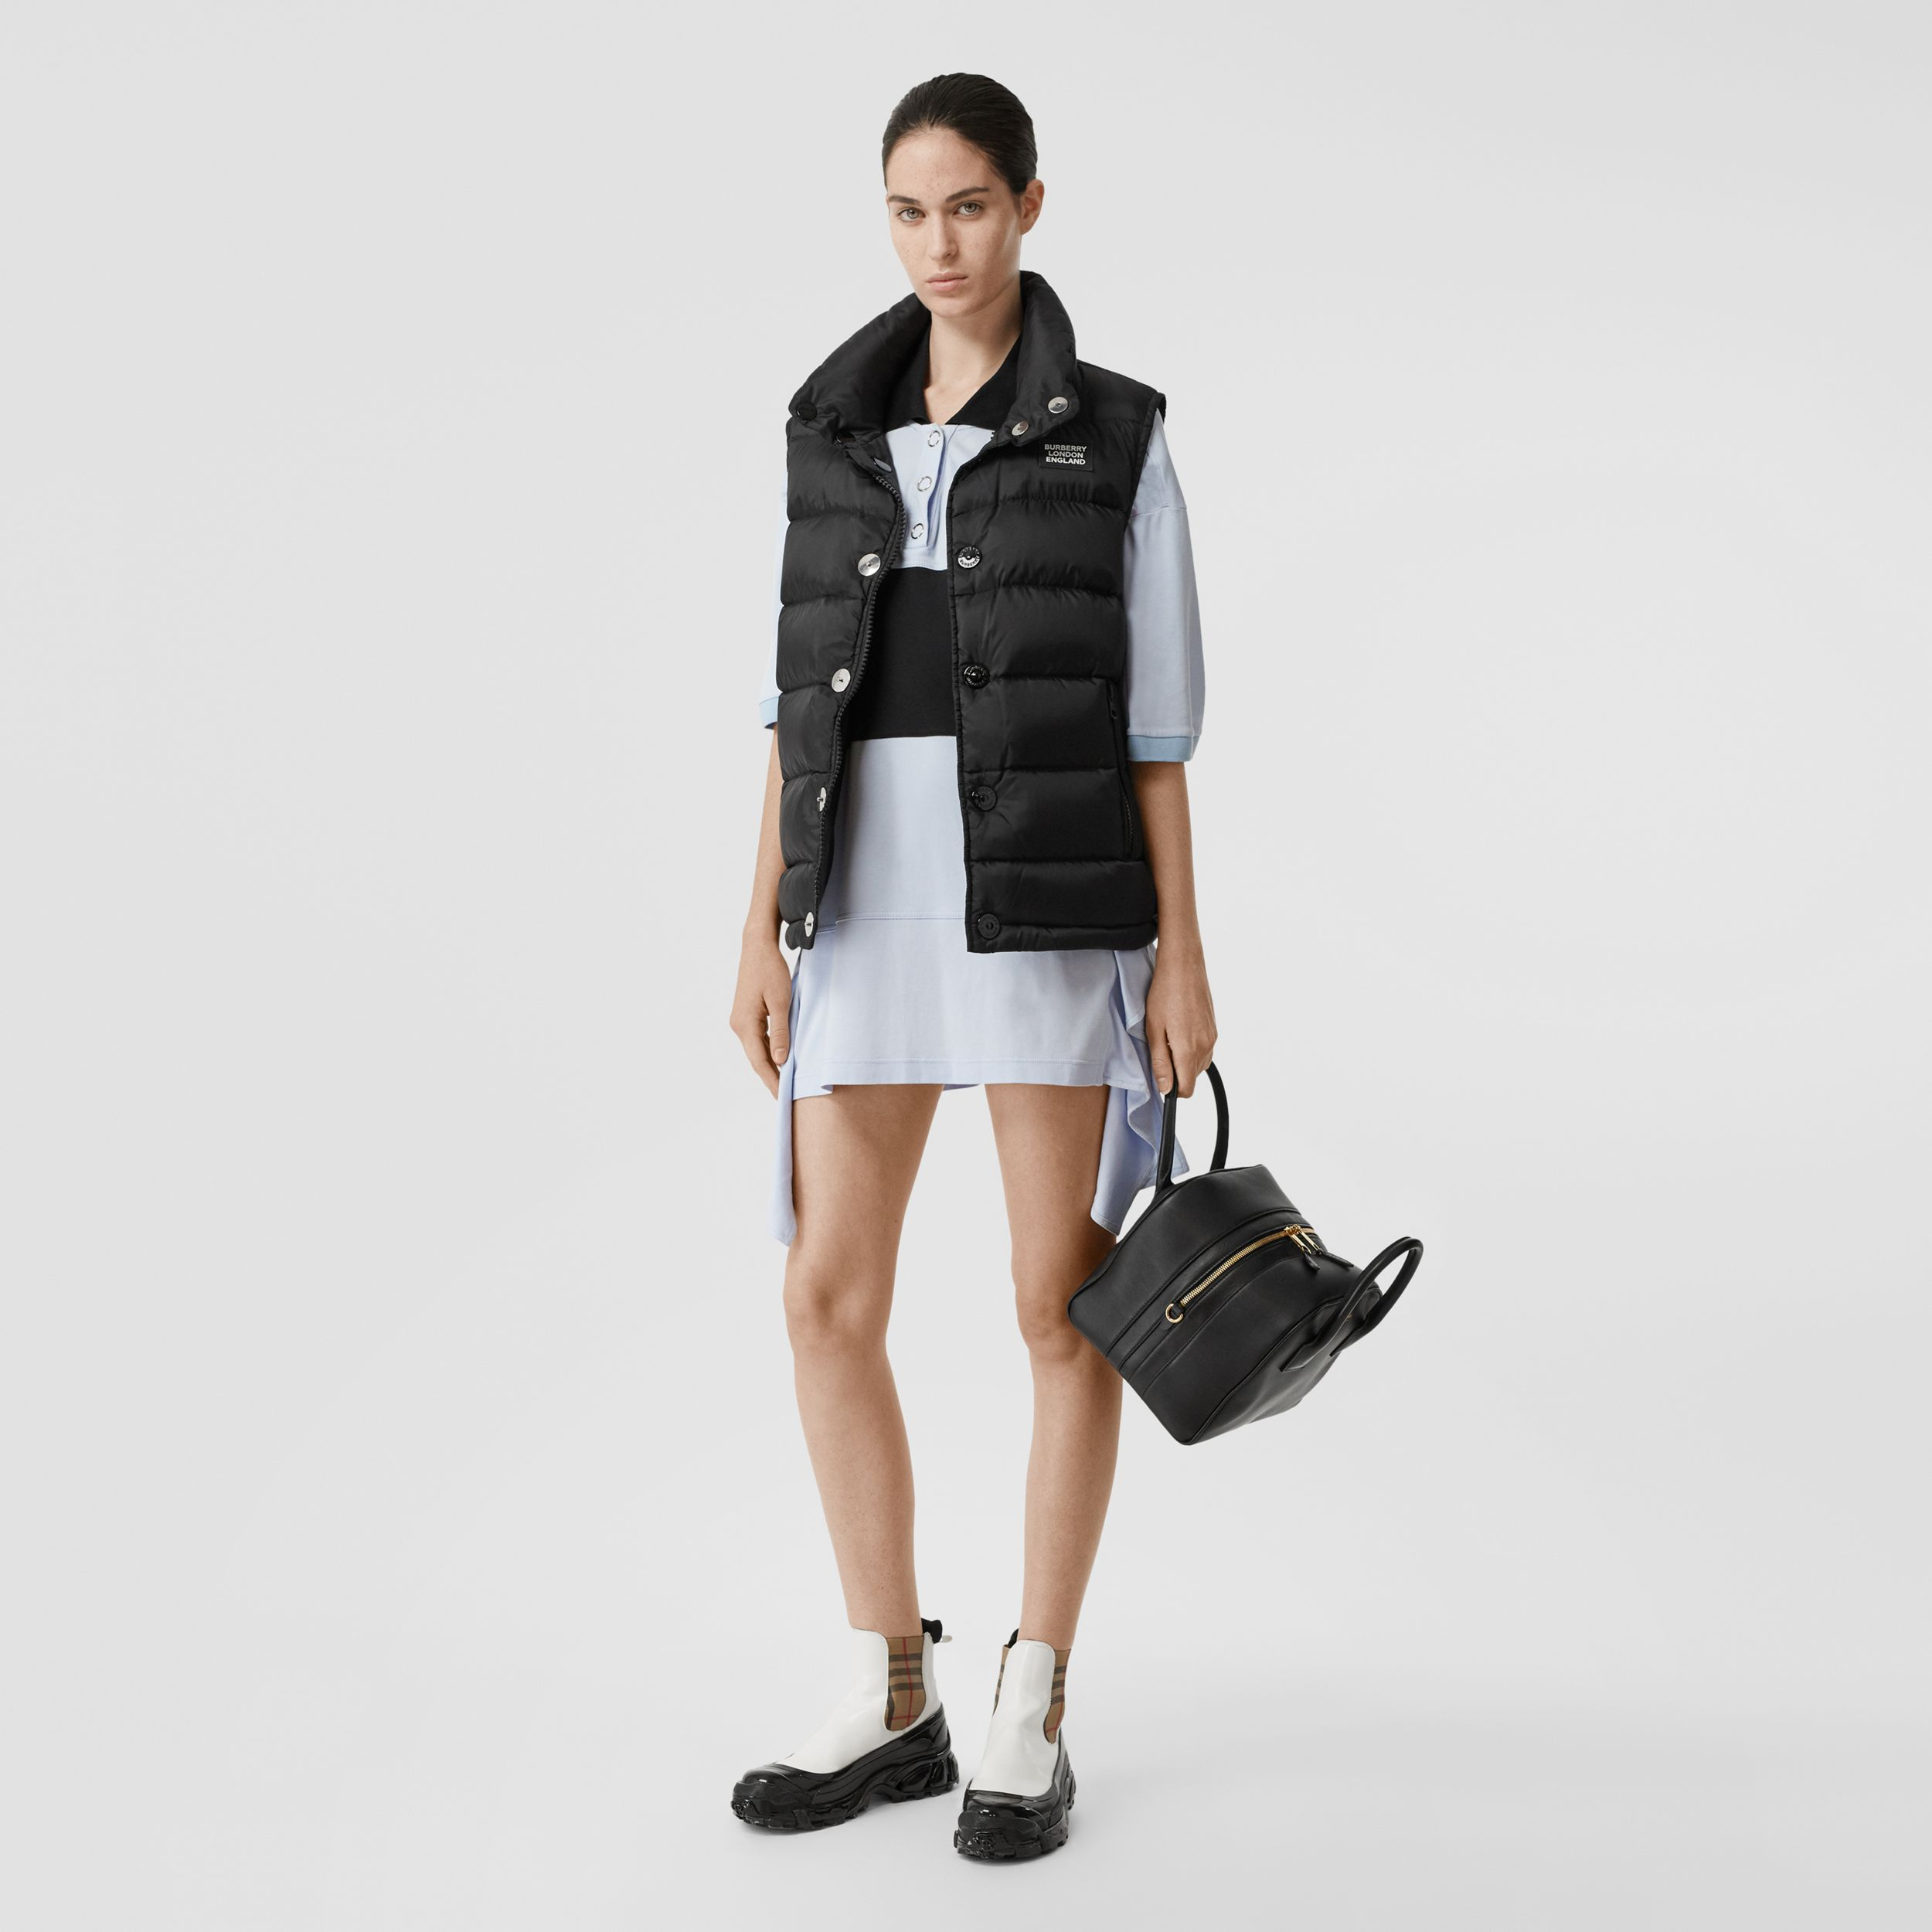 Monogram Stripe Print Puffer Gilet in Black | Burberry Australia - 3